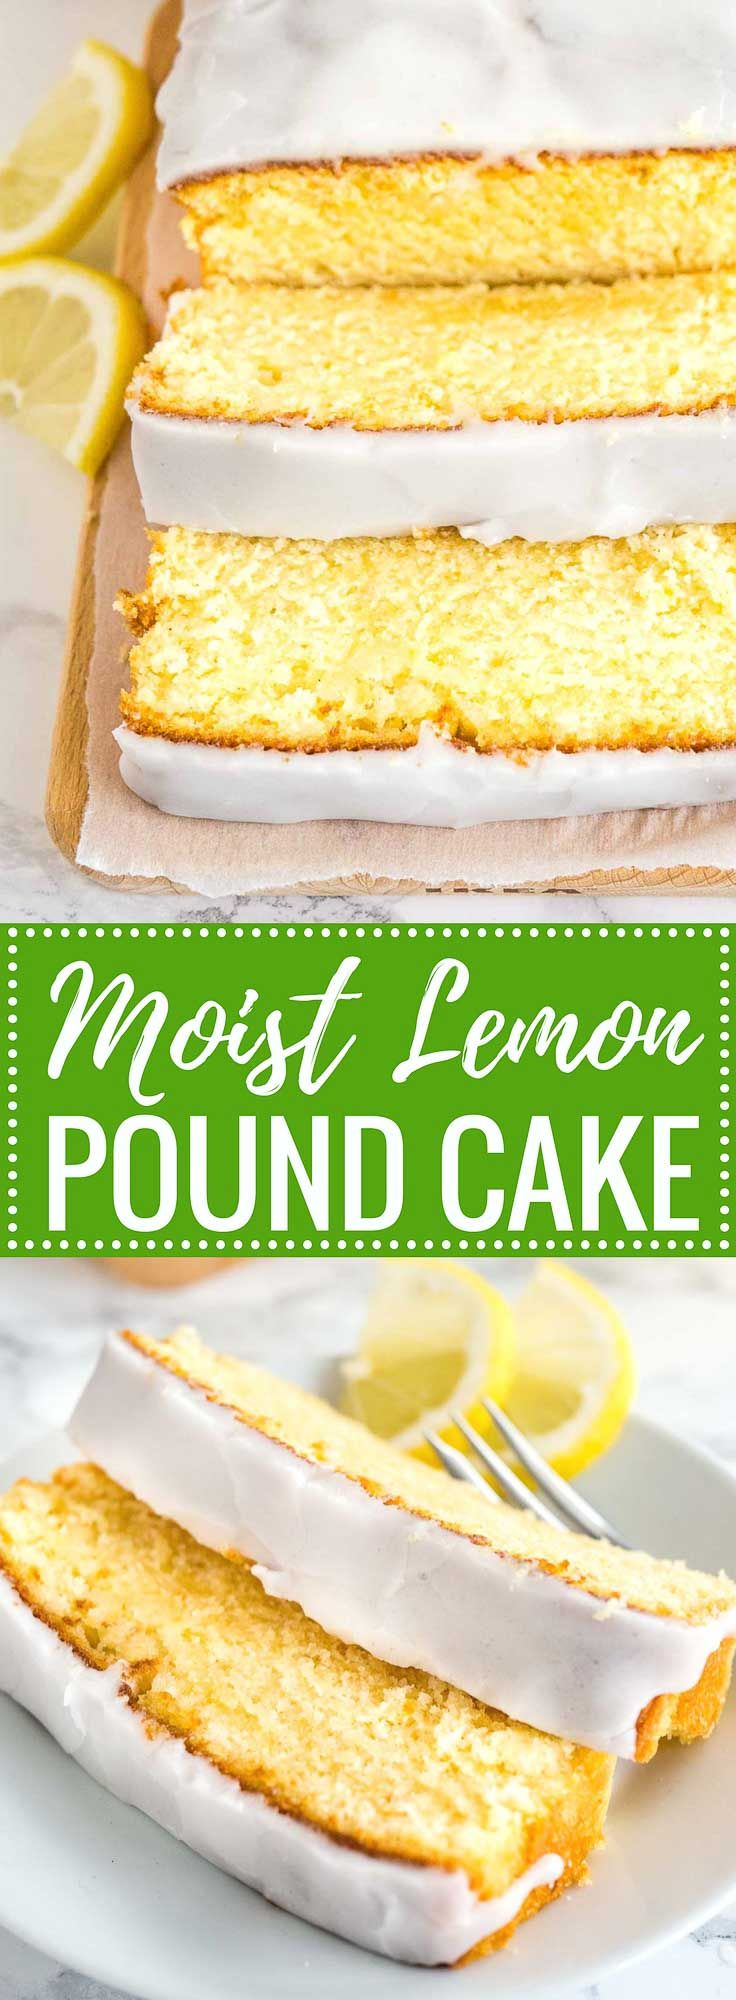 This moist Lemon Cake Recipe is fluffy, tangy and so easy to make from scratch! Every bite of this supremely moist pound cake is bursting with lemon flavor. If you like the Starbucks Lemon Loaf then you'll love this homemade lemon pound cake!